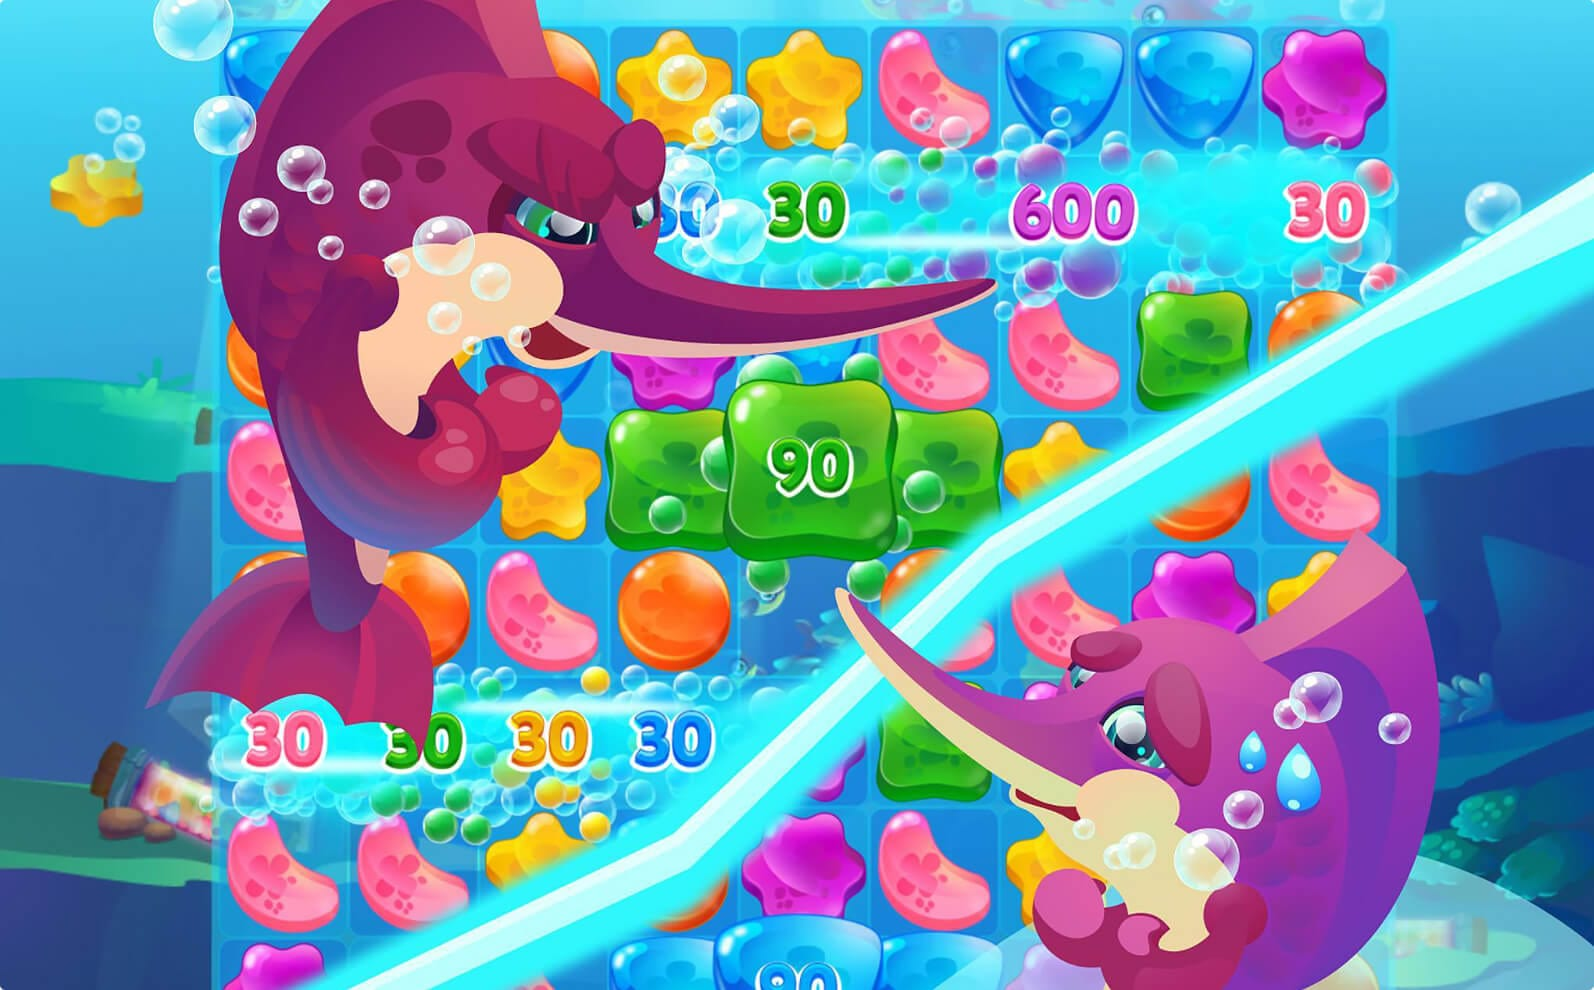 Jelly Jellies is a mobile match 3 game co-development